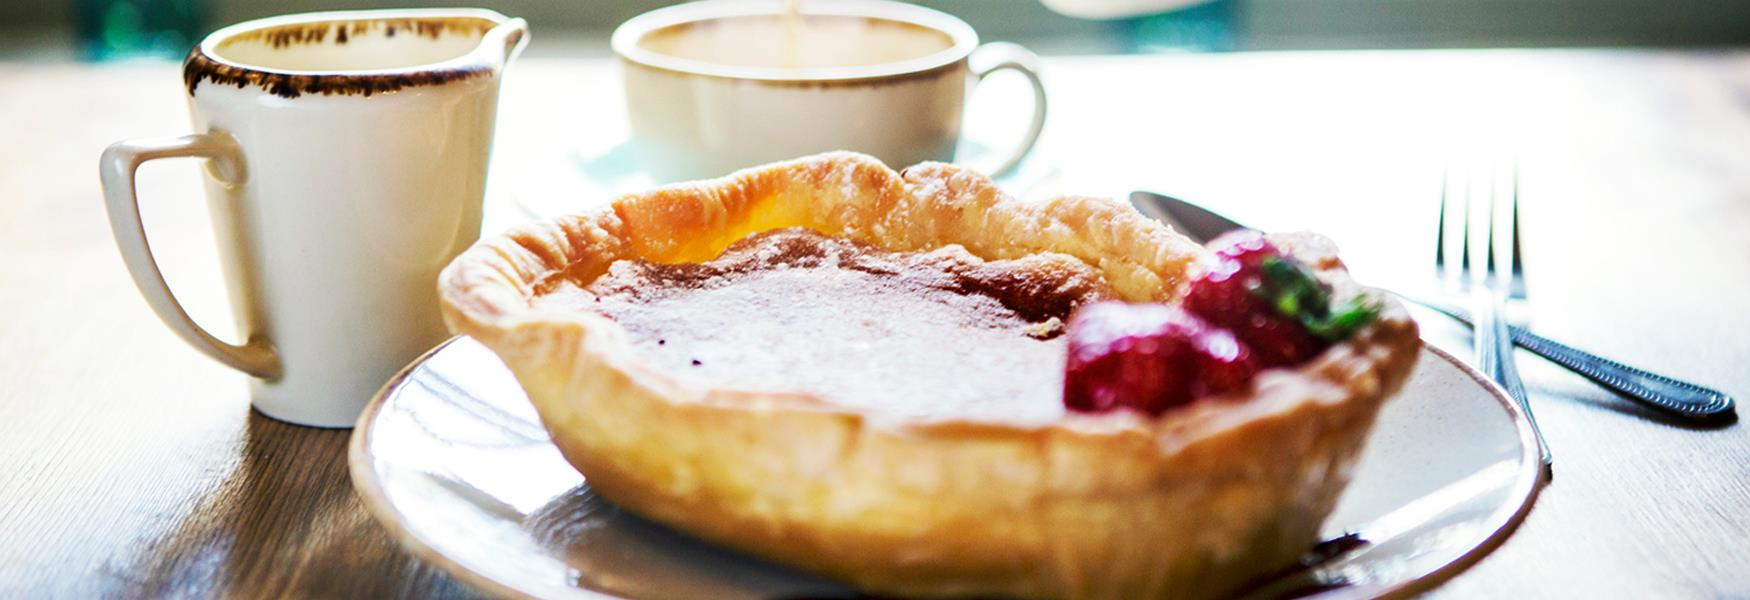 Try our famous Bakewell Pudding!